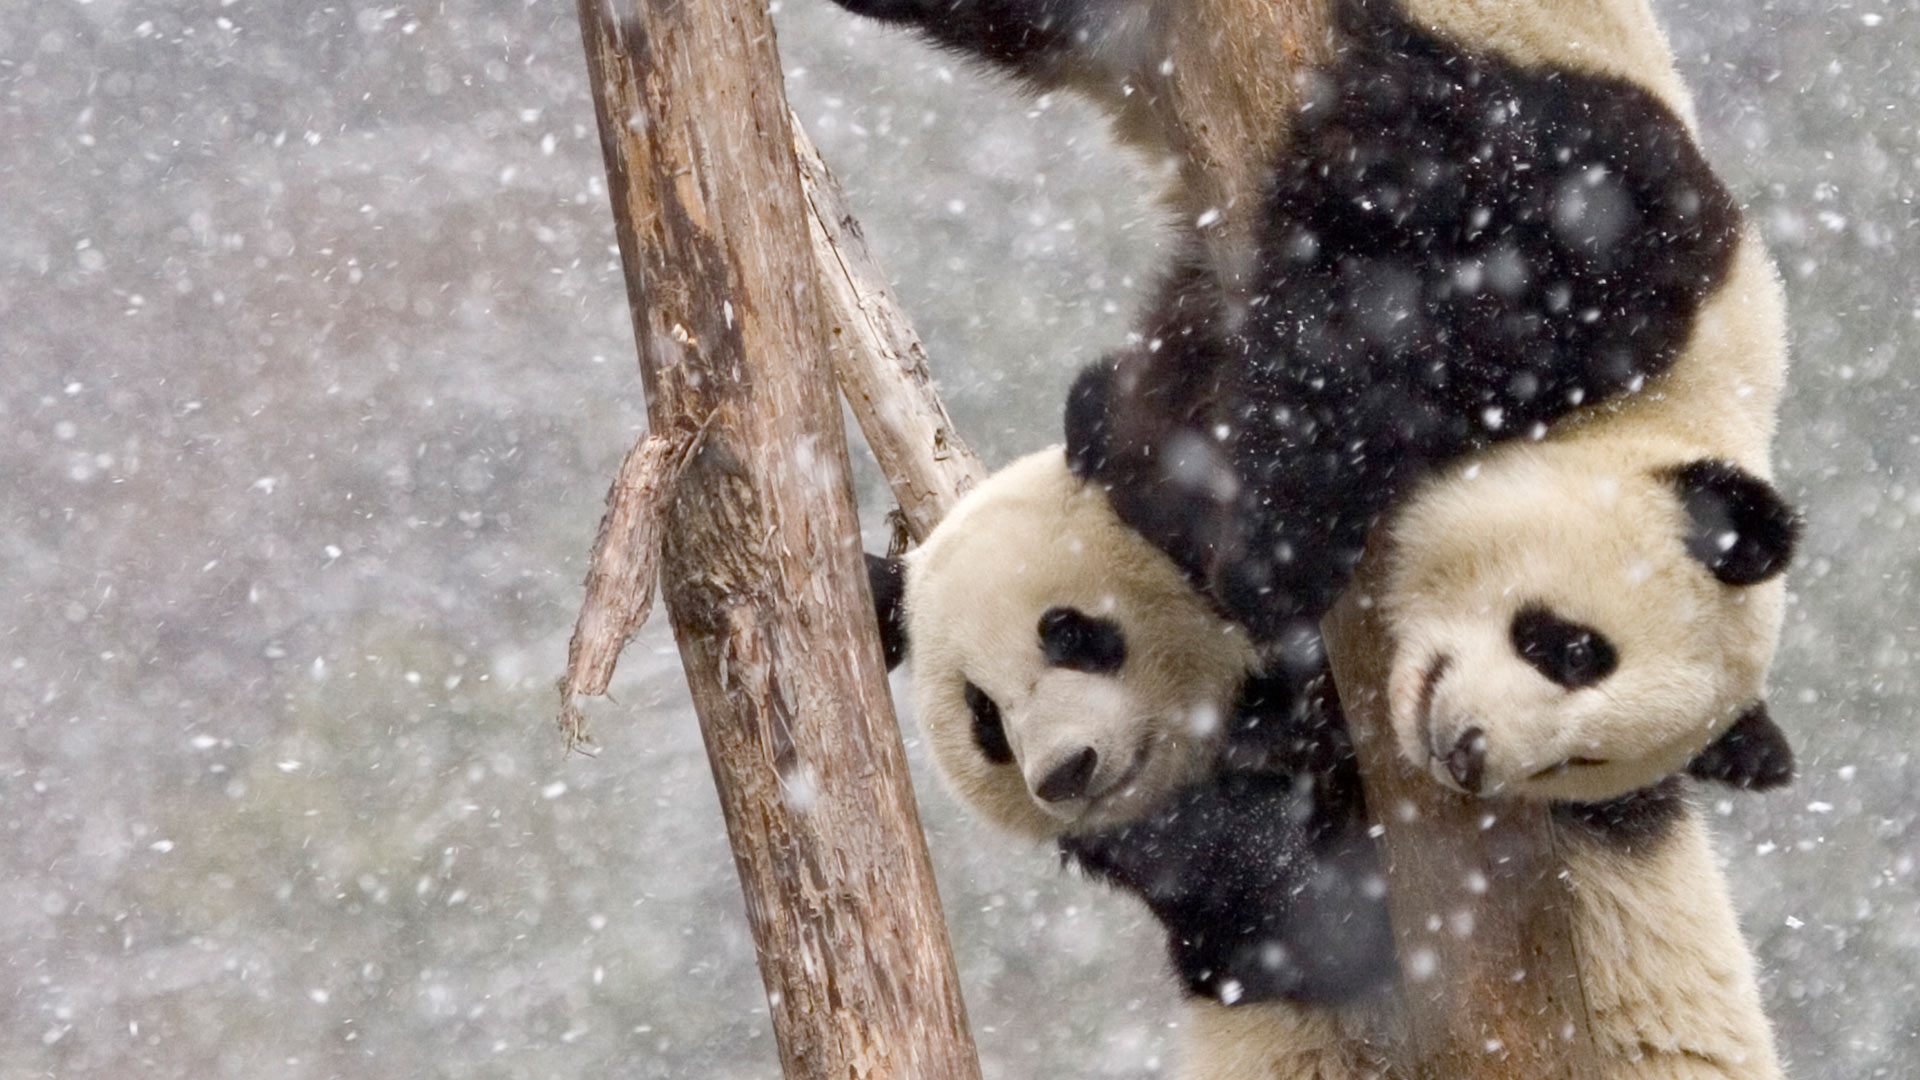 Giant pandas in Sichuan, China (© Juan Carlos Munoz/Minden Pictures)